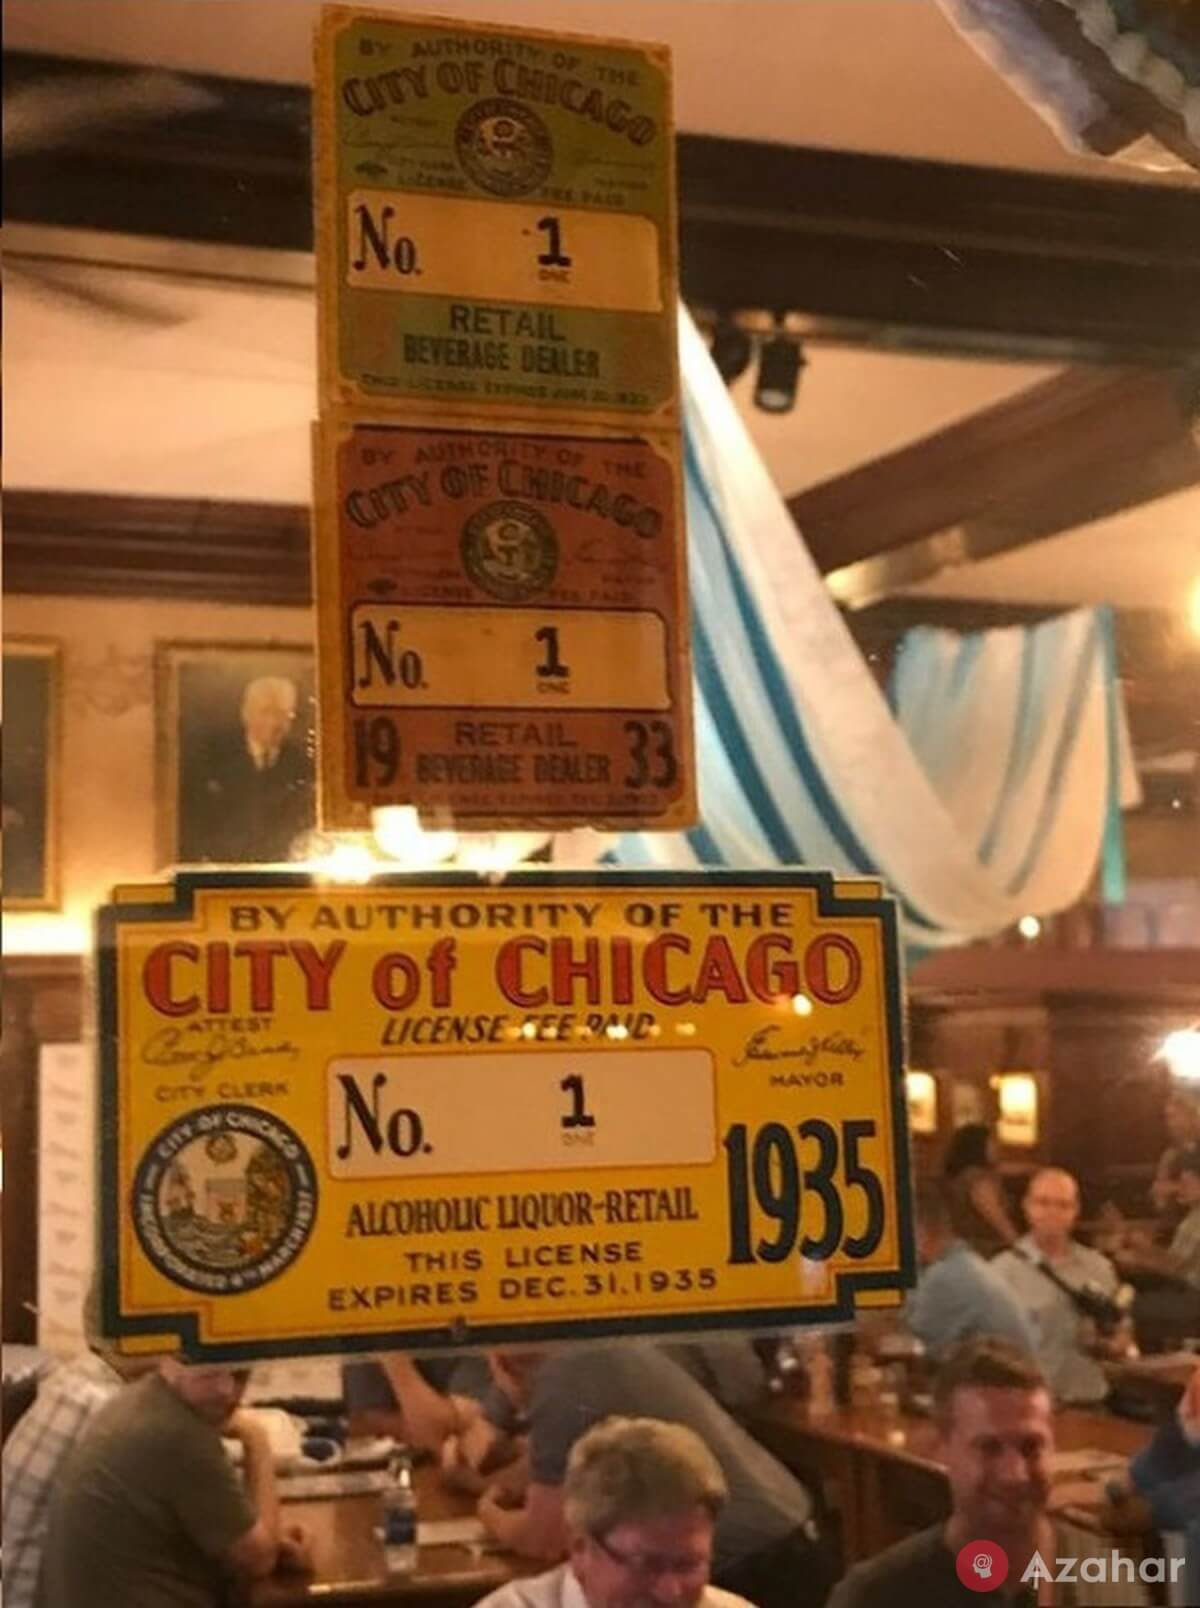 A Bar In Chicago That Was The Very First To Receive A License To Sell Alcohol After The Repeal Of Prohibition